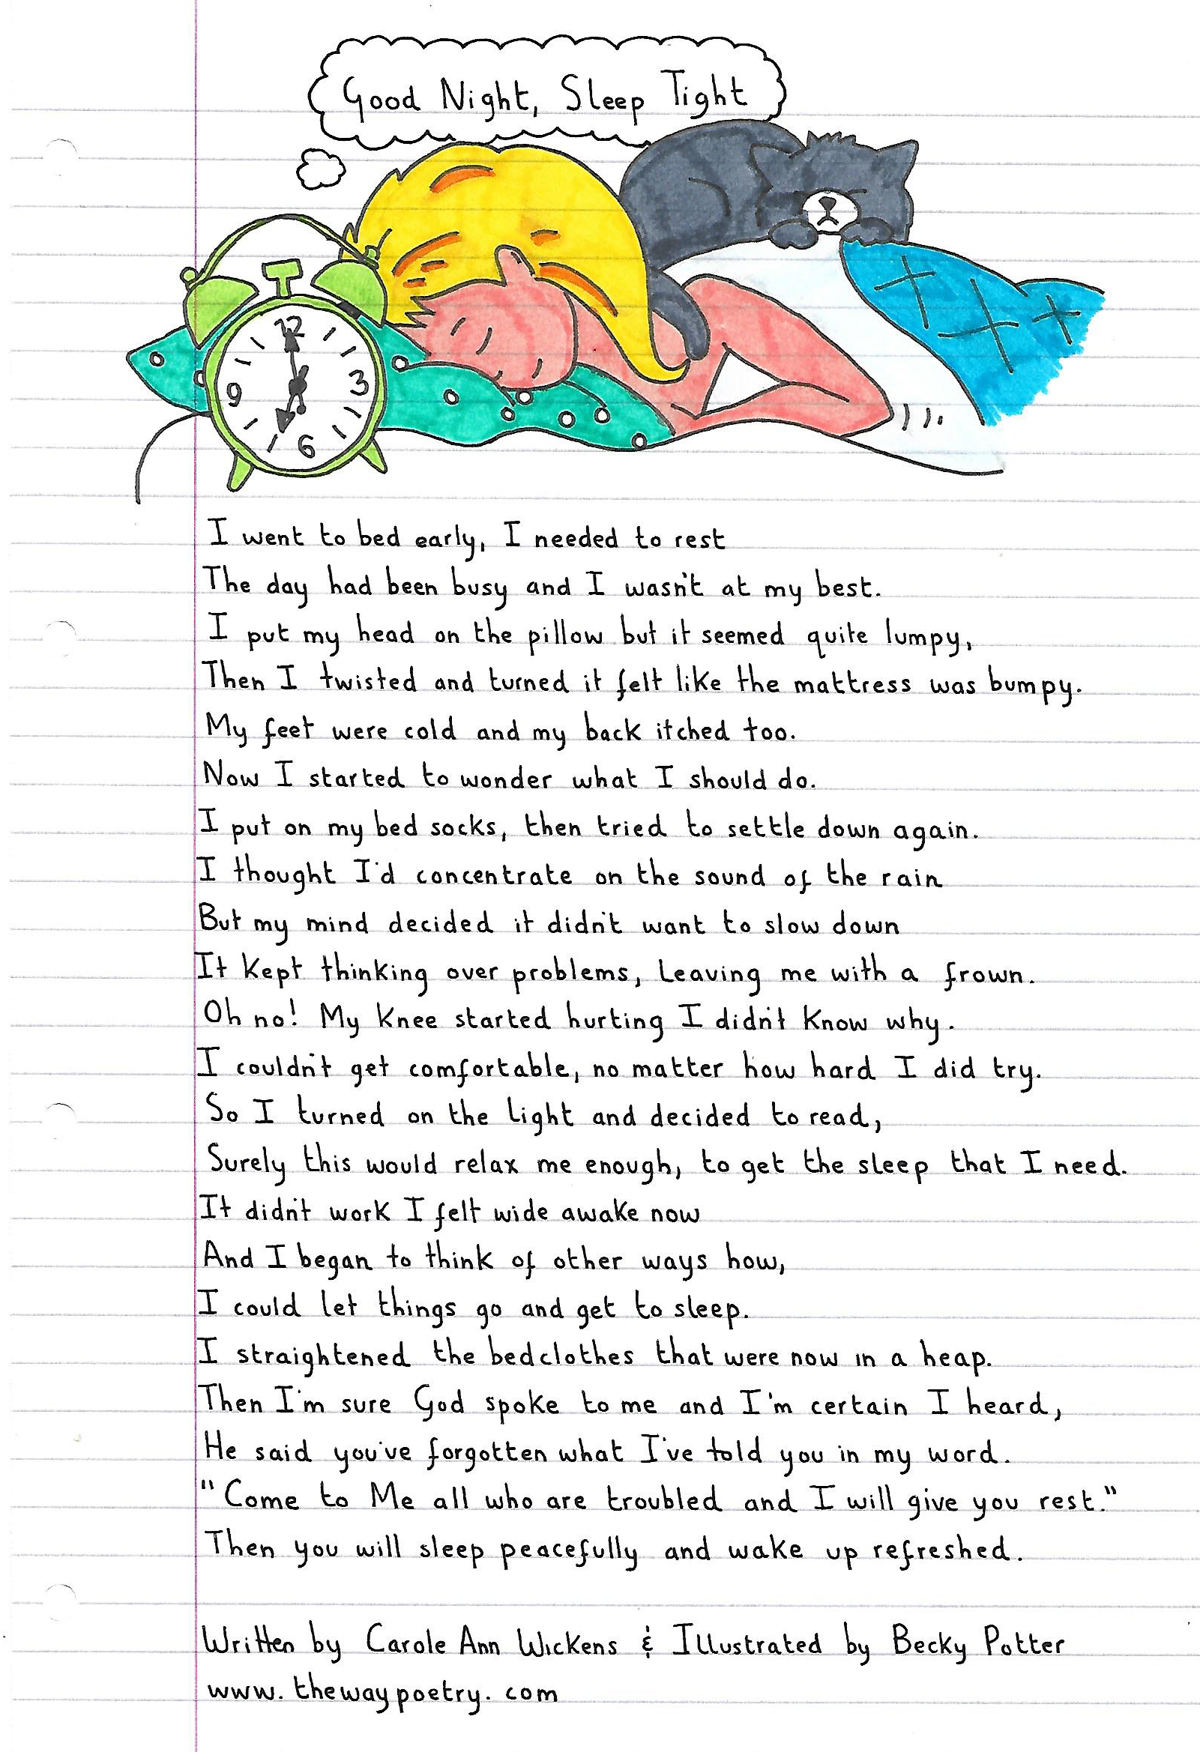 Good Night Sleep Tight by Carole Ann Wickens